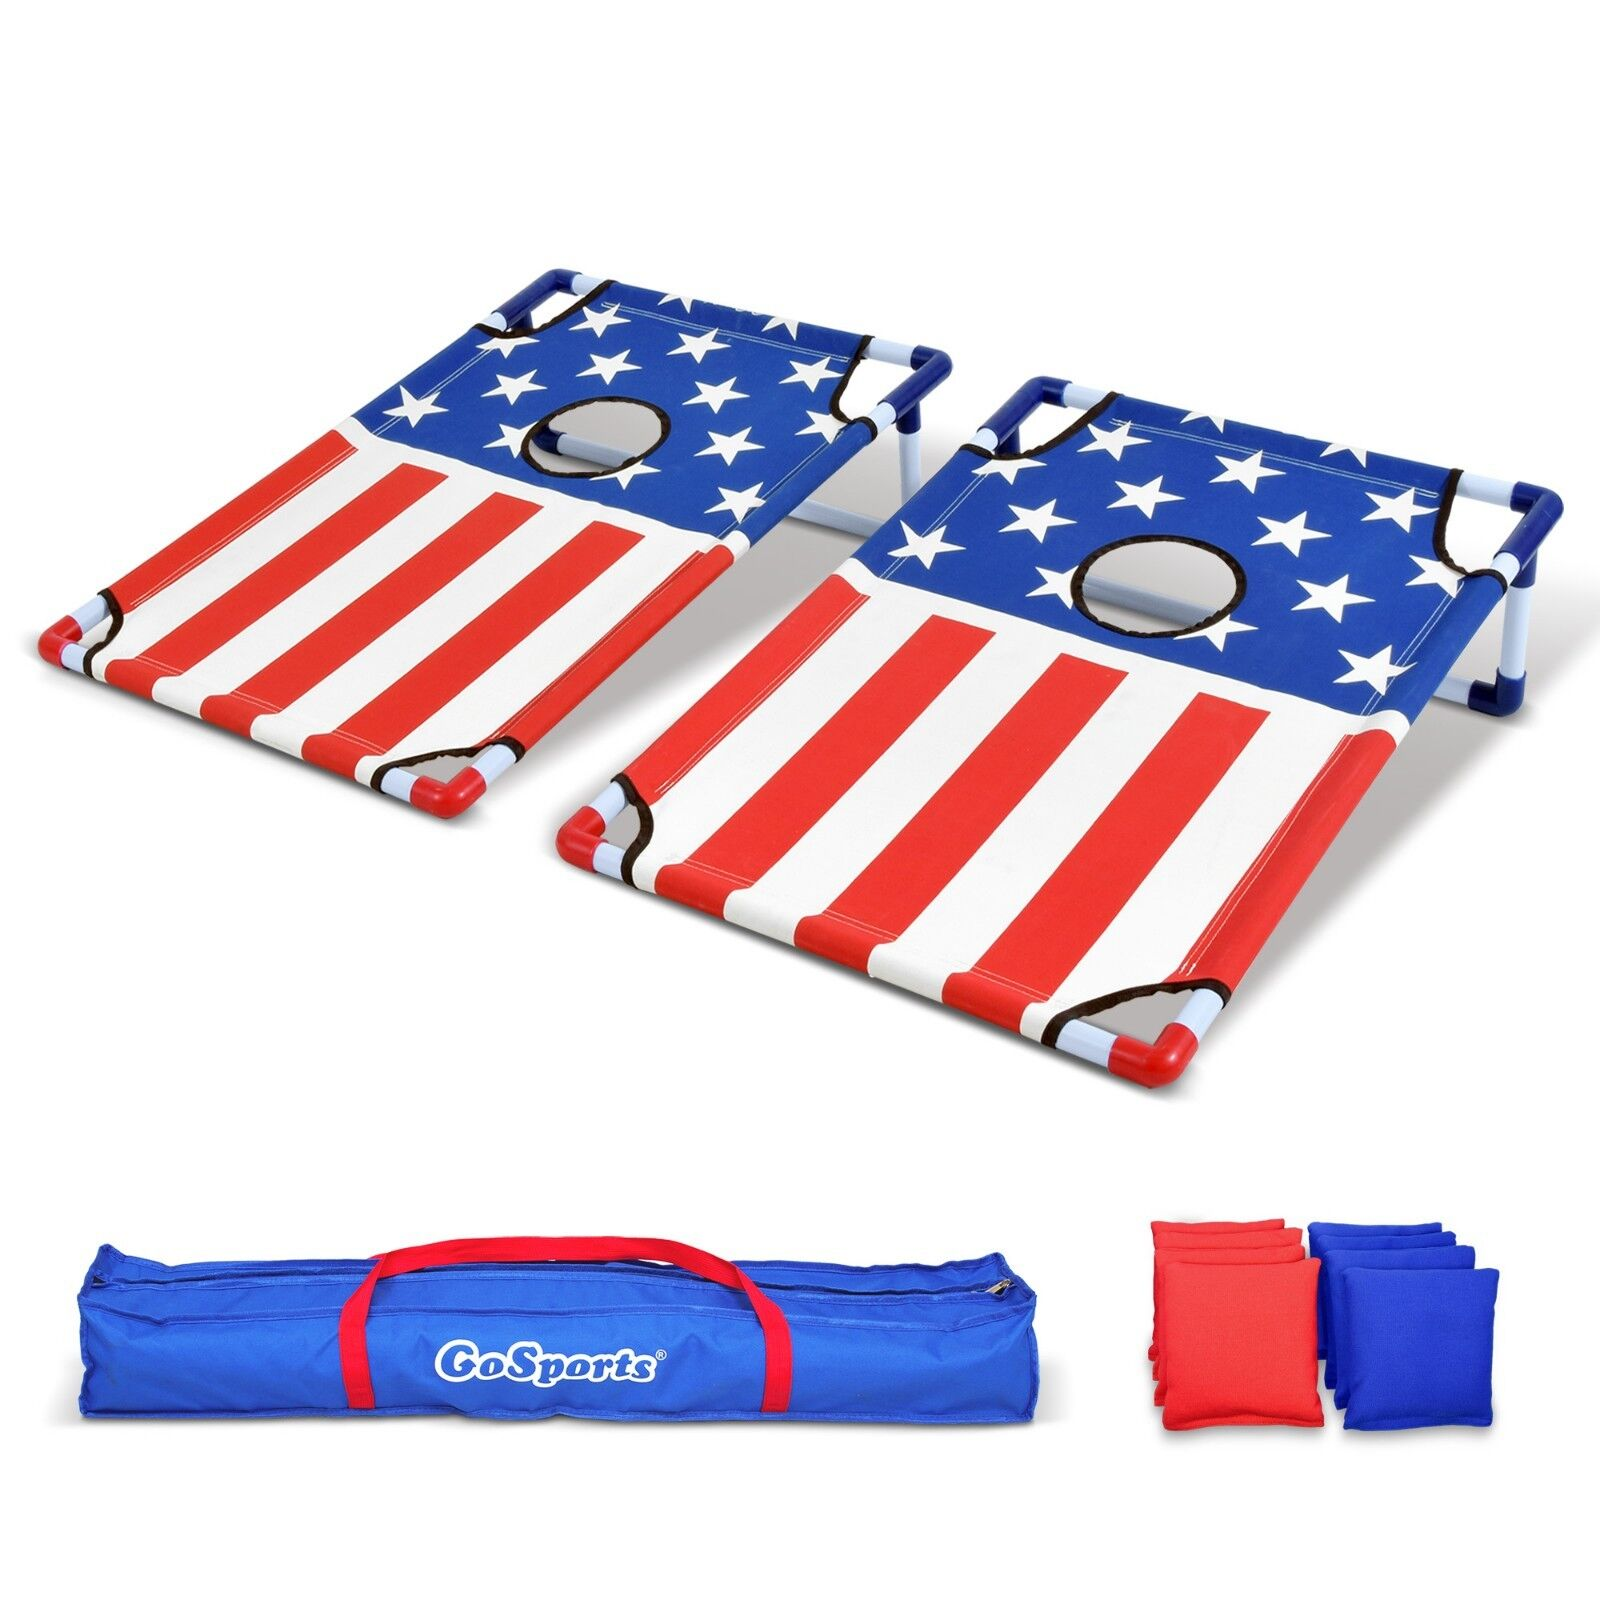 GoSports American Flag 3x2 PVC Cornhole Set Game Boards with 8 Bean Bags & Case